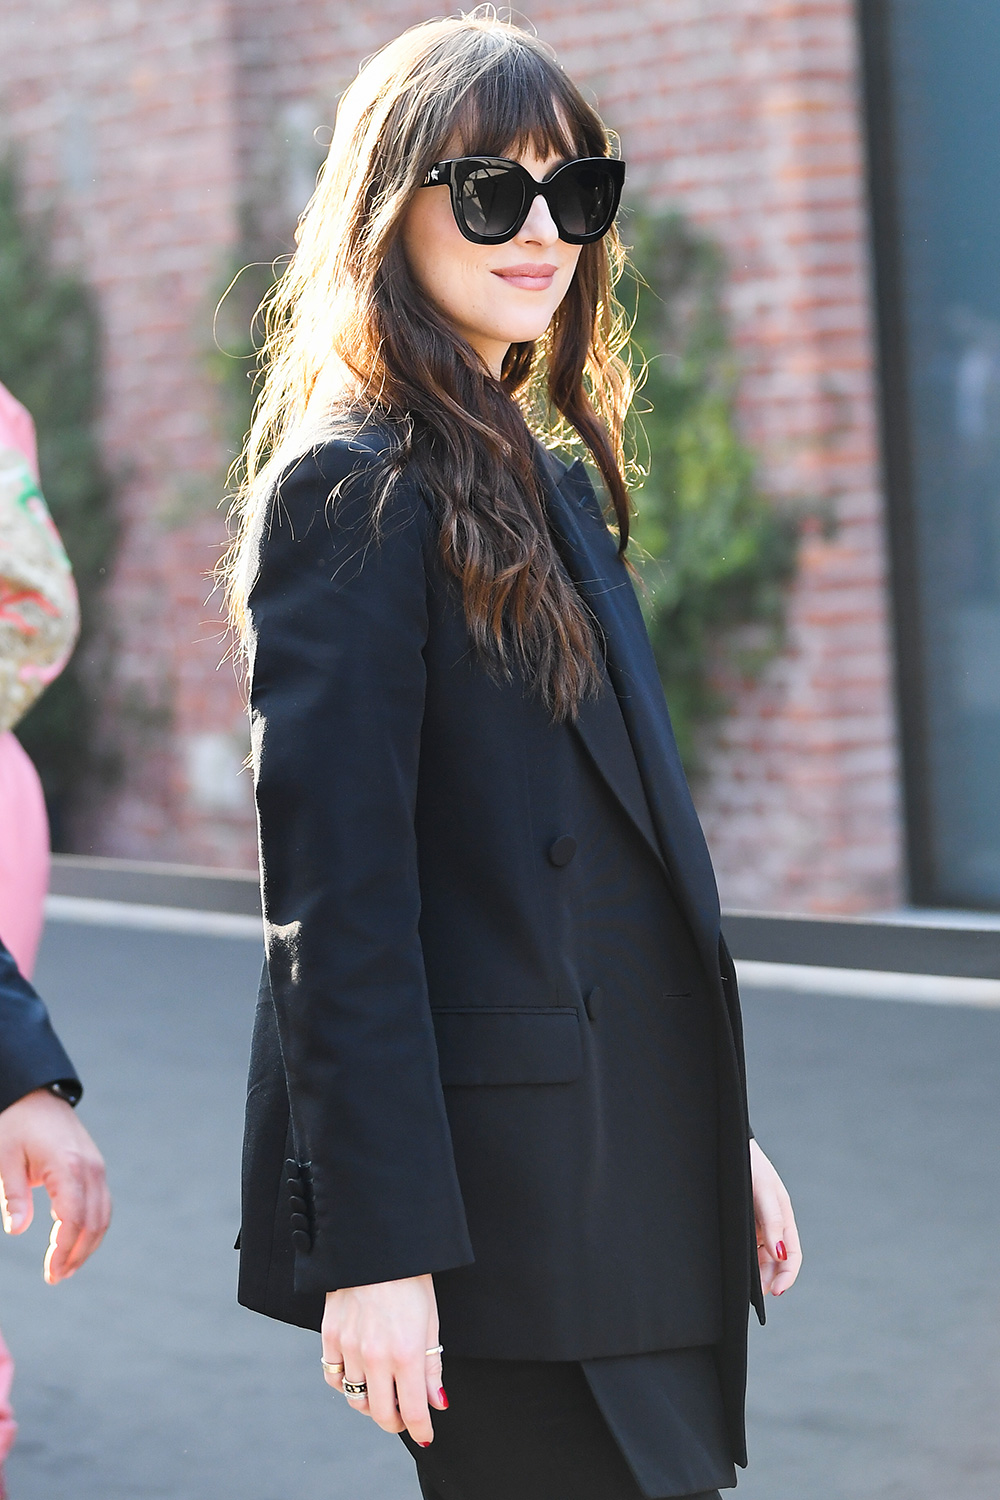 Dakota Johnson attends the Gucci fashion show on February 19, 2020 in Milan, Italy